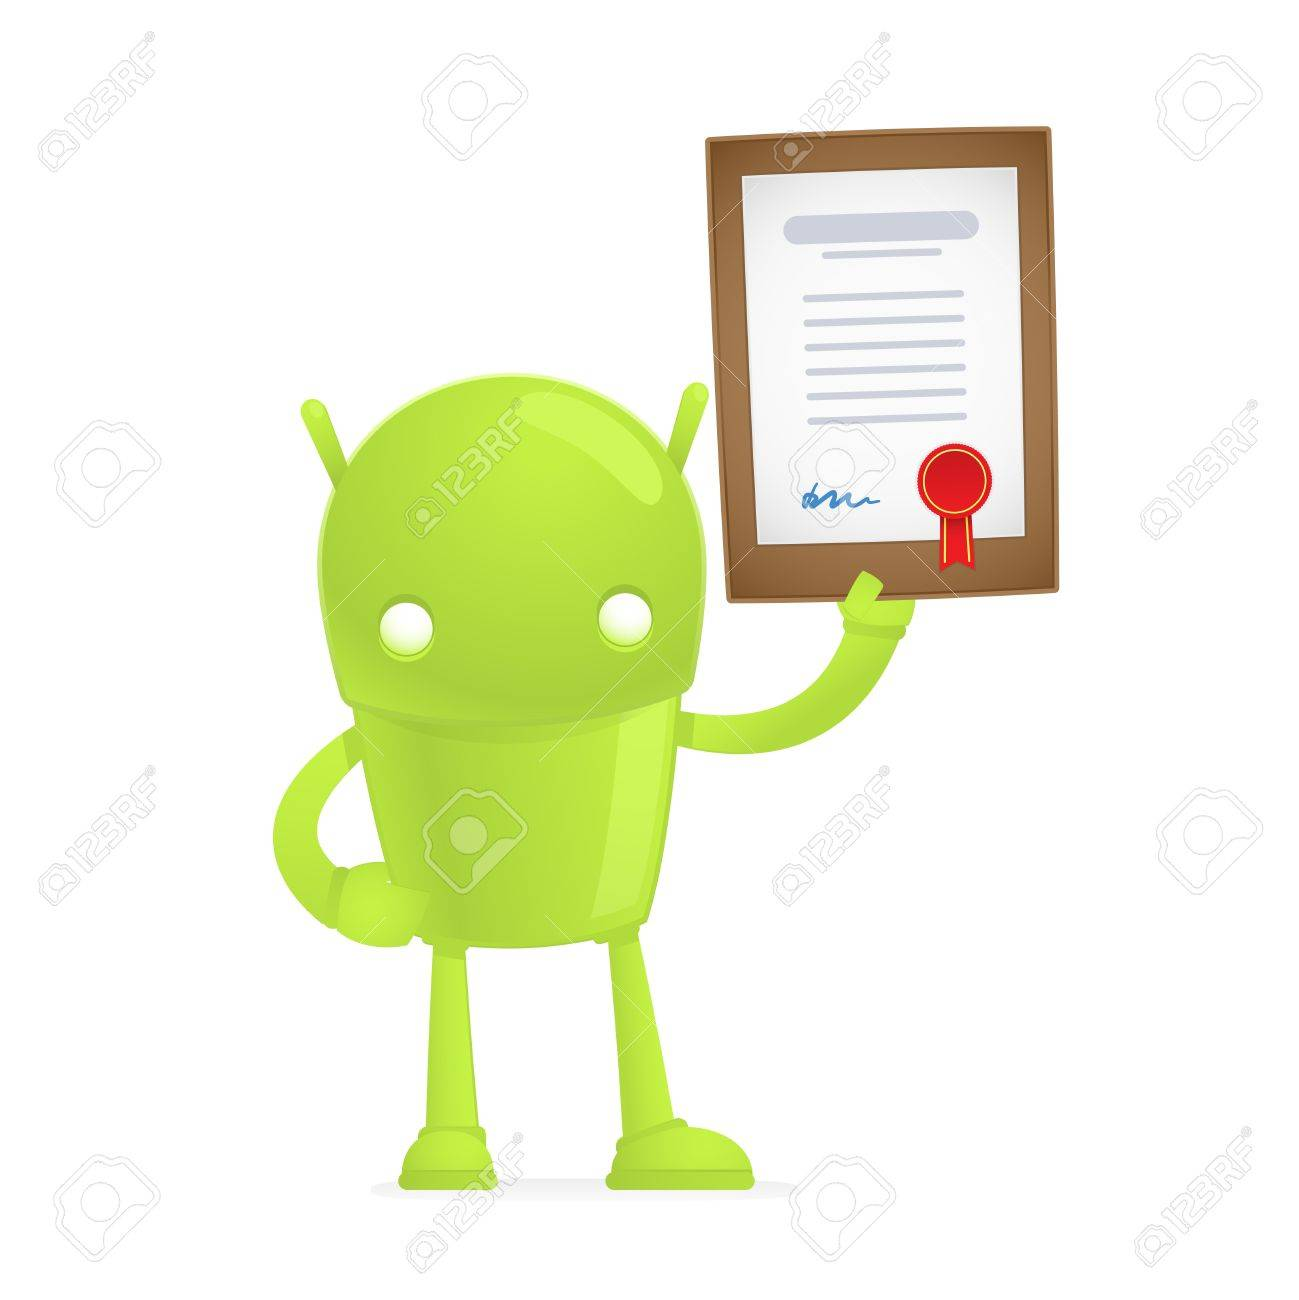 funny cartoon android Stock Vector - 17655322